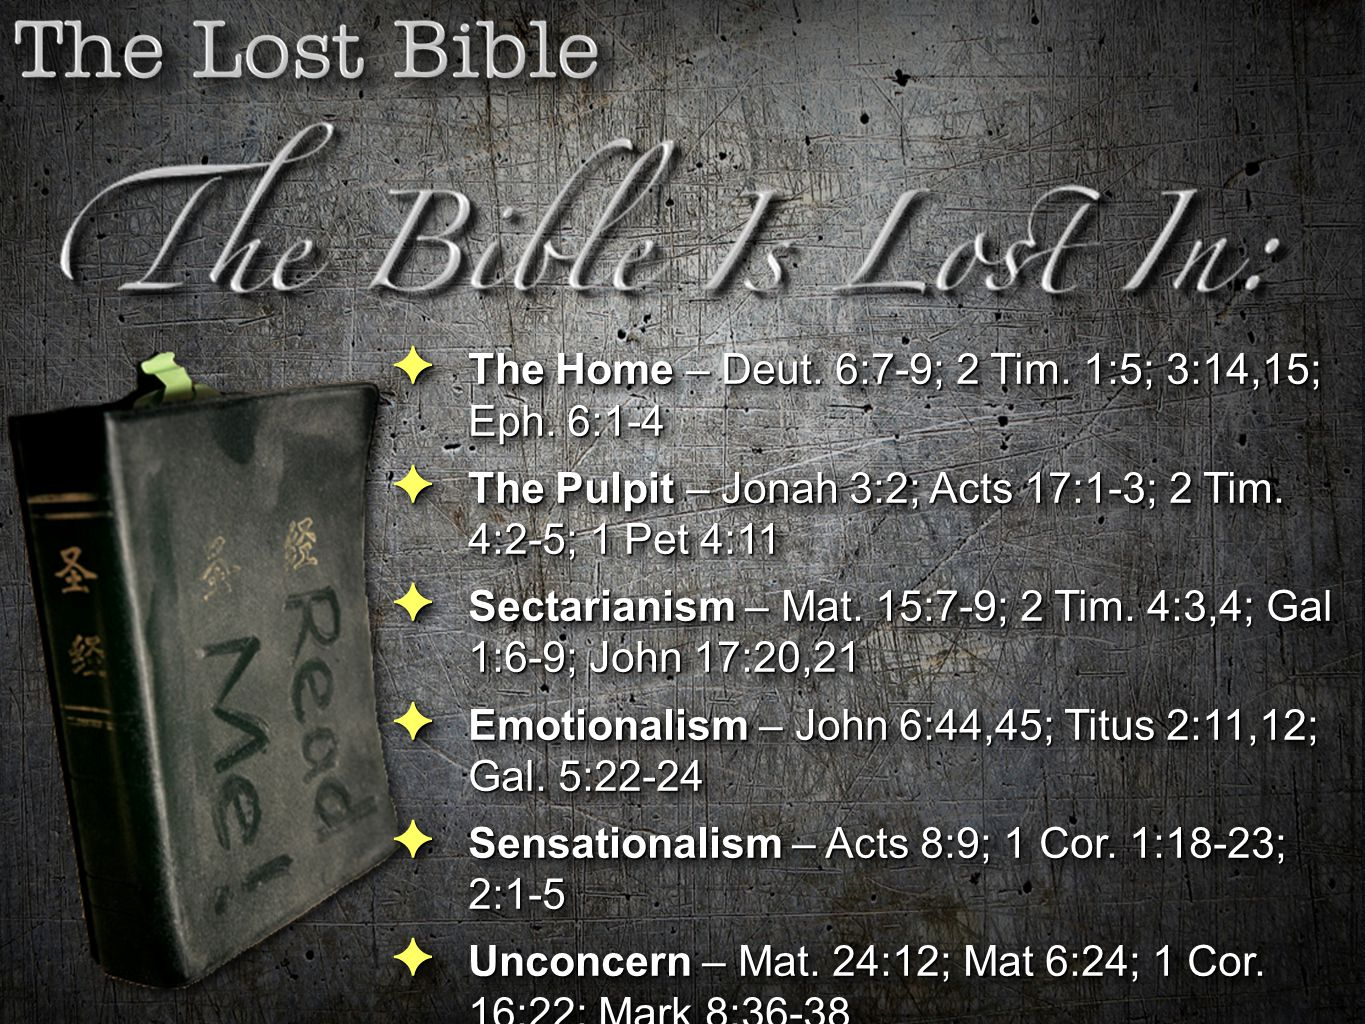 ✦ The Home – Deut. 6:7-9; 2 Tim. 1:5; 3:14,15; Eph. 6:1-4 ✦ The Pulpit – Jonah 3:2; Acts 17:1-3; 2 Tim. 4:2-5; 1 Pet 4:11 ✦ Sectarianism – Mat. 15:7-9